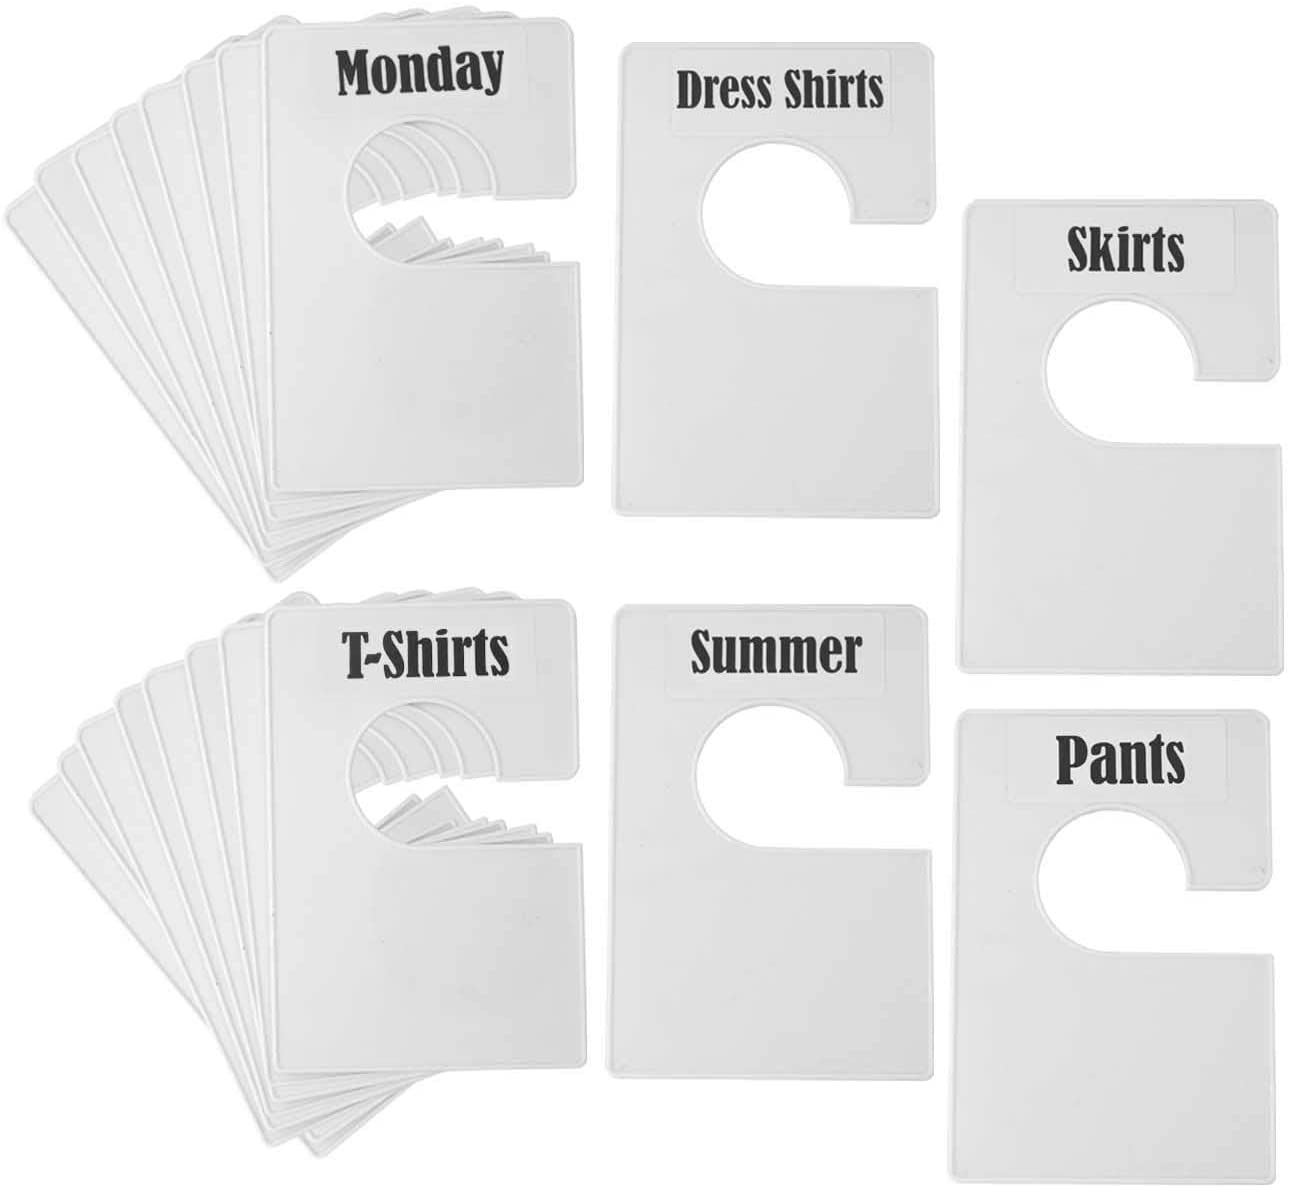 TraGoods 20 Pack White Clothing Rack Size Dividers Plus 60 Labels (1 Inch) and 40 Large Blank Labels, Large Rectangular Clothing Closet Dividers (Pearl White)